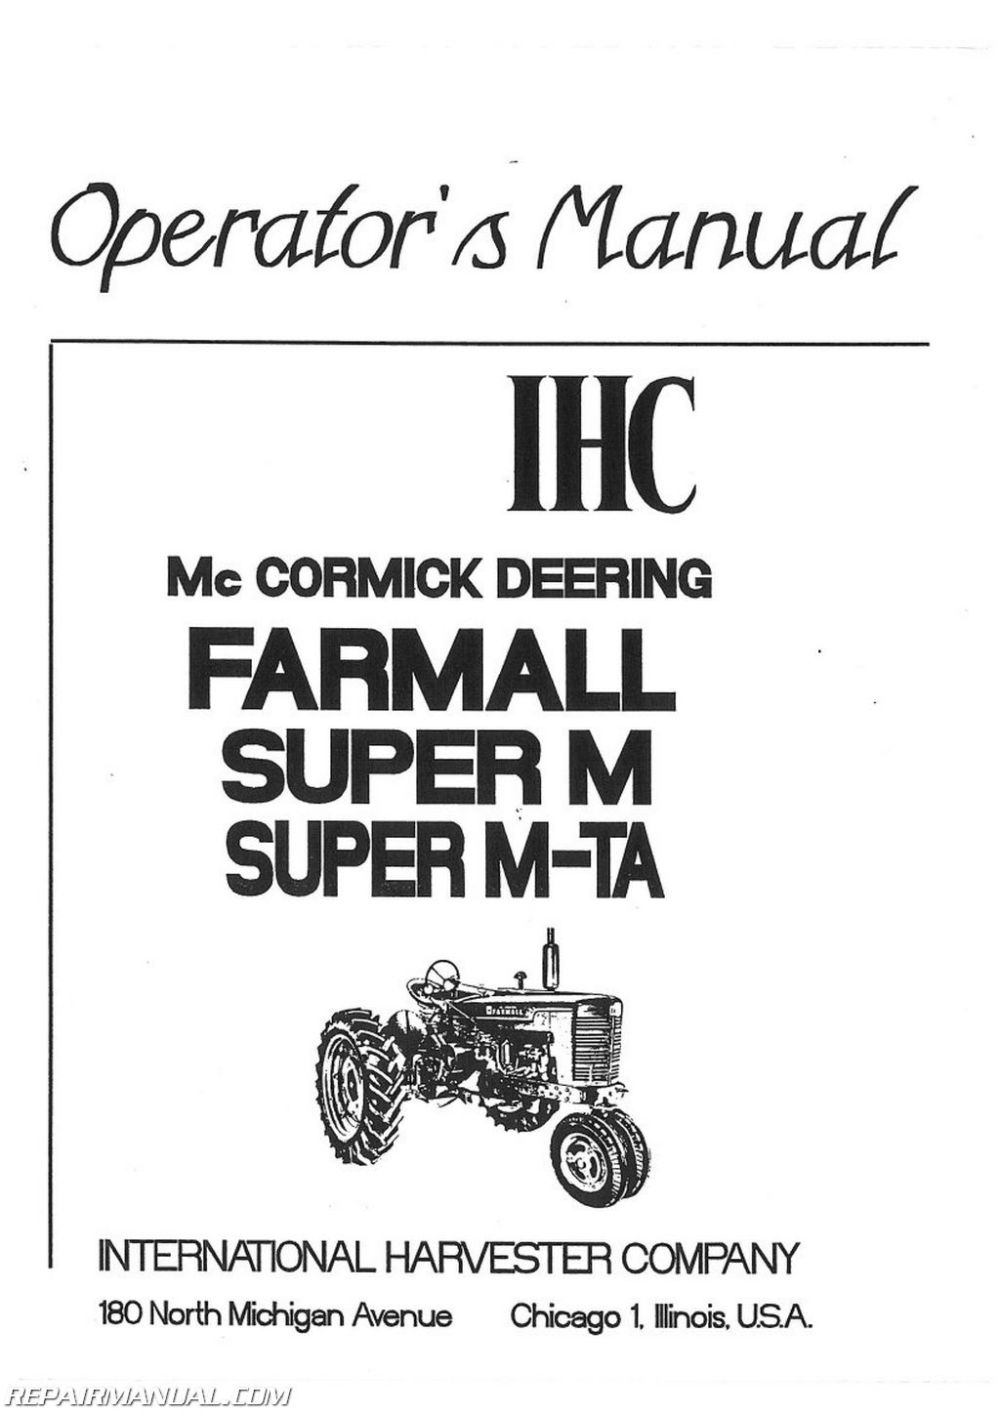 medium resolution of international harvester farmall super mta mvta operators manual farmall super mta tractor parts farmall super mta wiring diagram